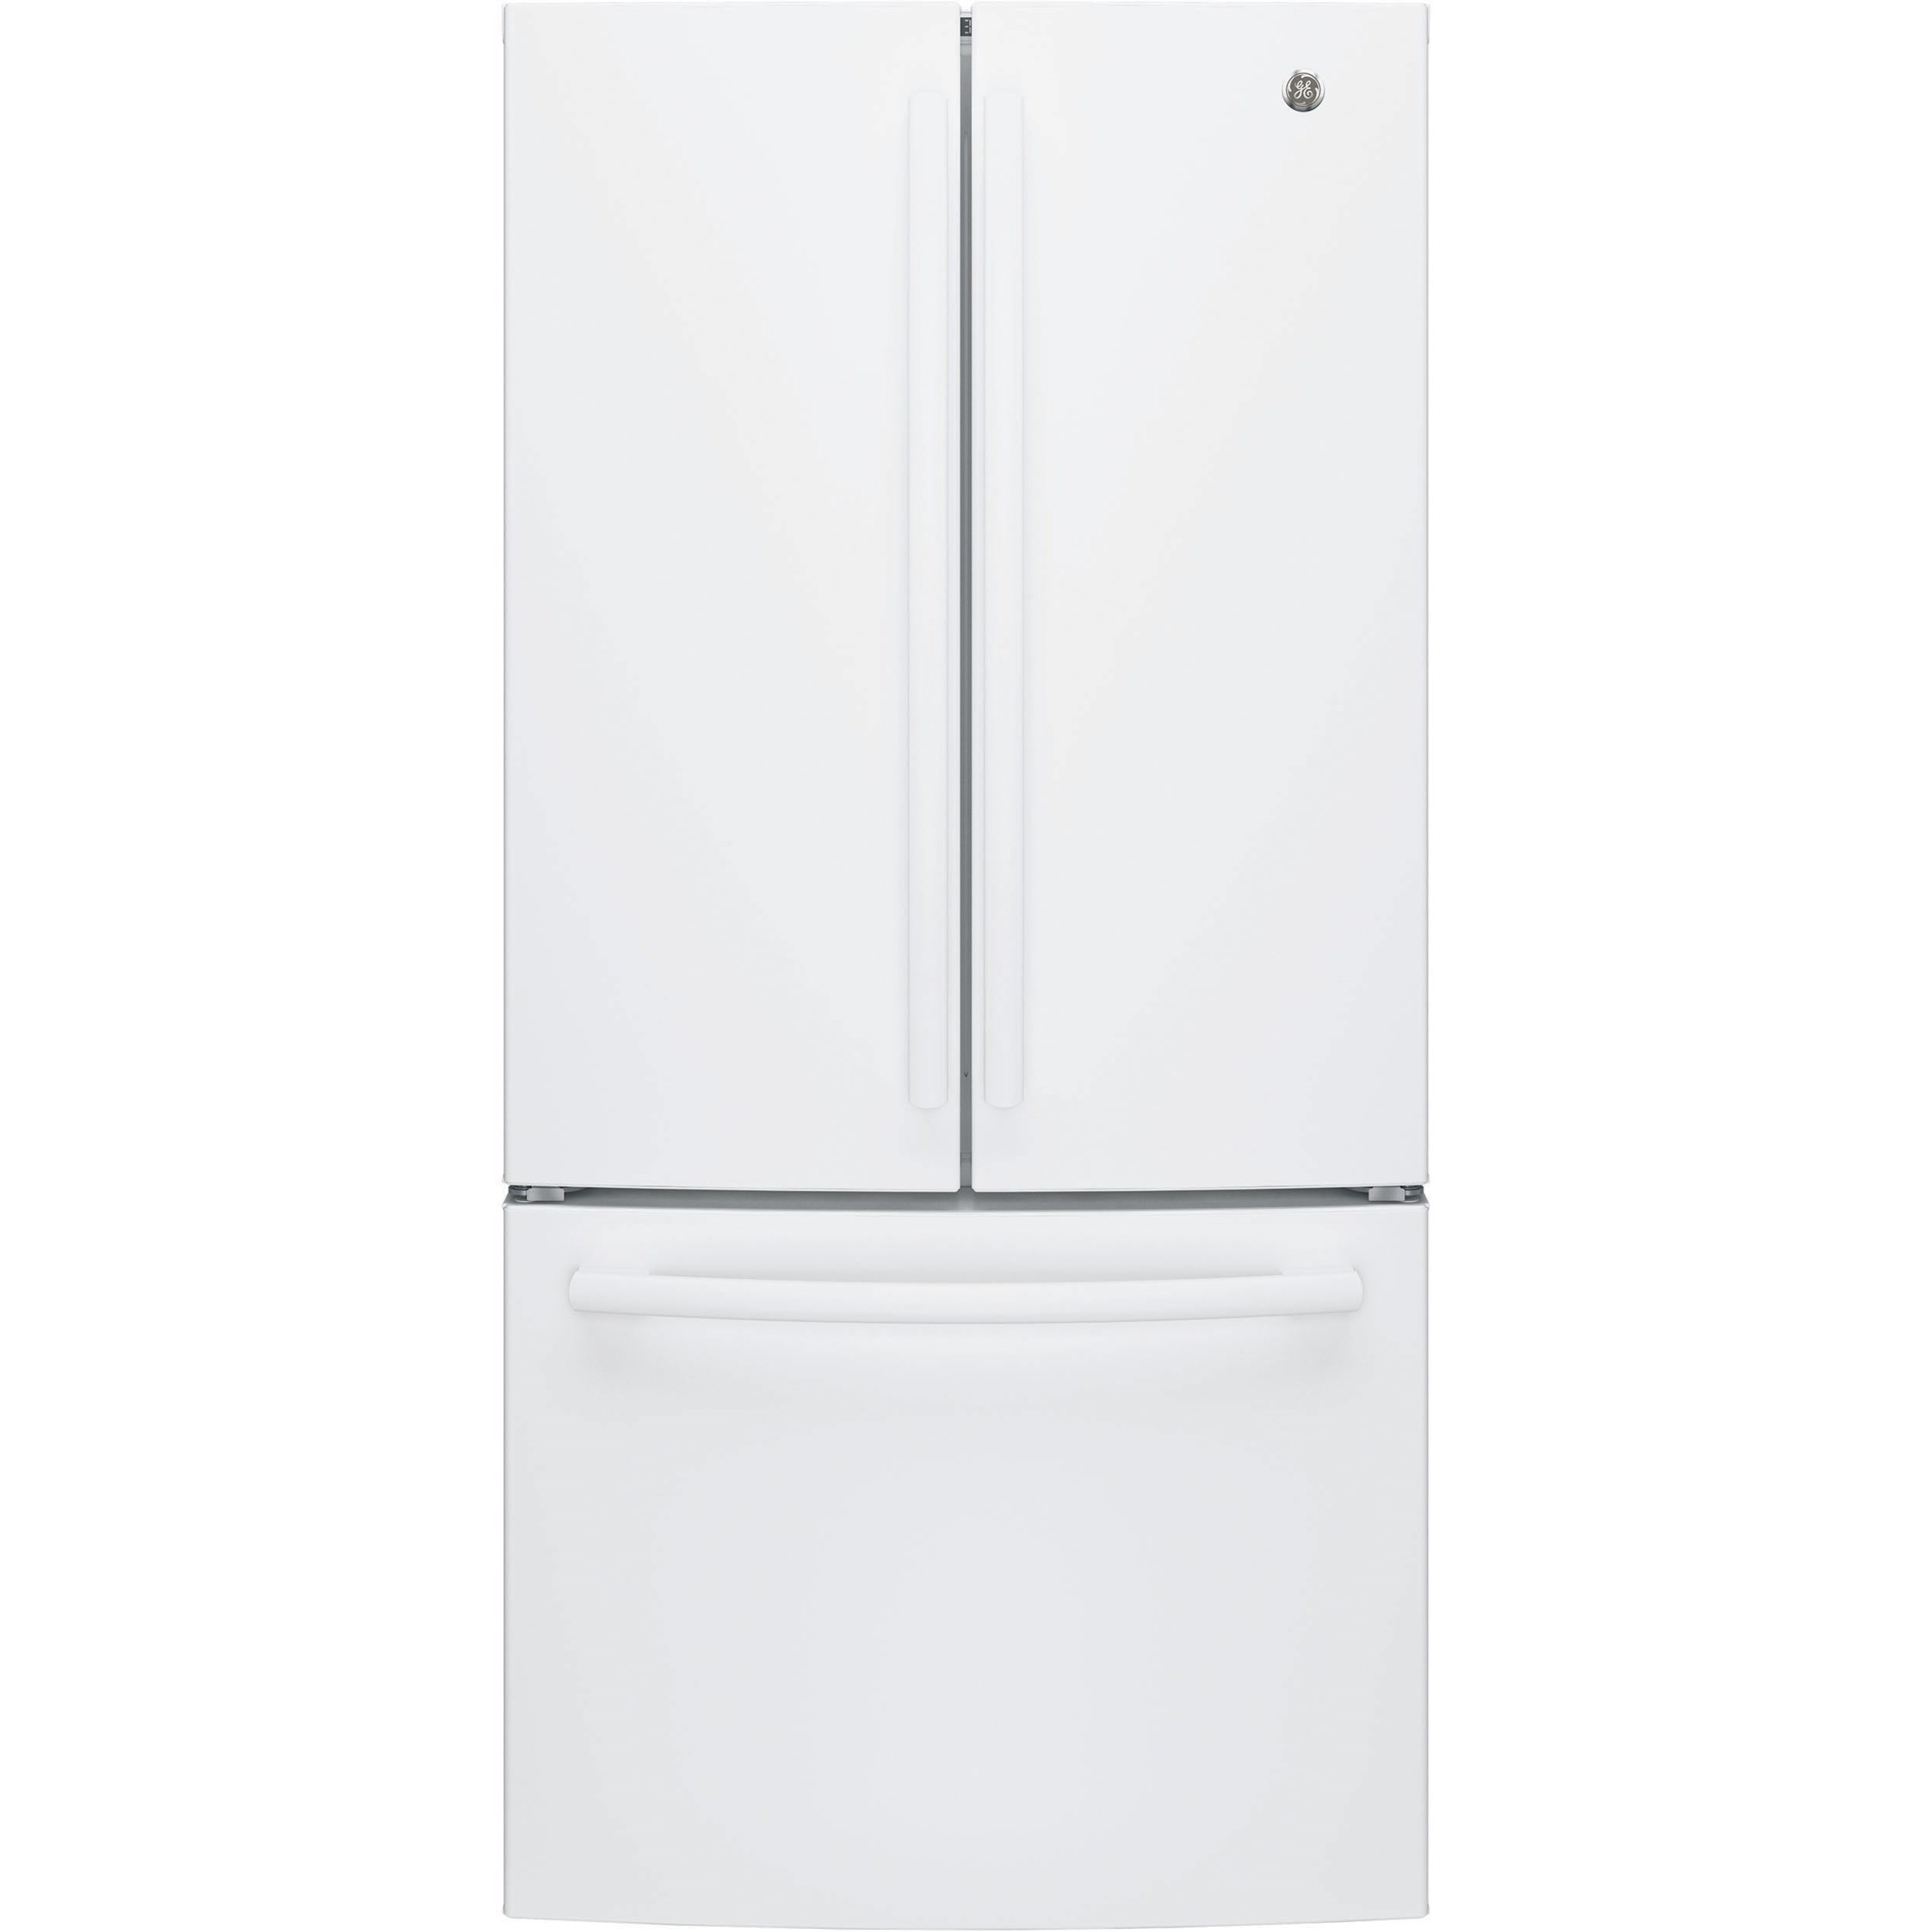 GE French Door Refrigerators 24.8 Cu. Ft. French-Door Refrigerator by GE Appliances at Westrich Furniture & Appliances